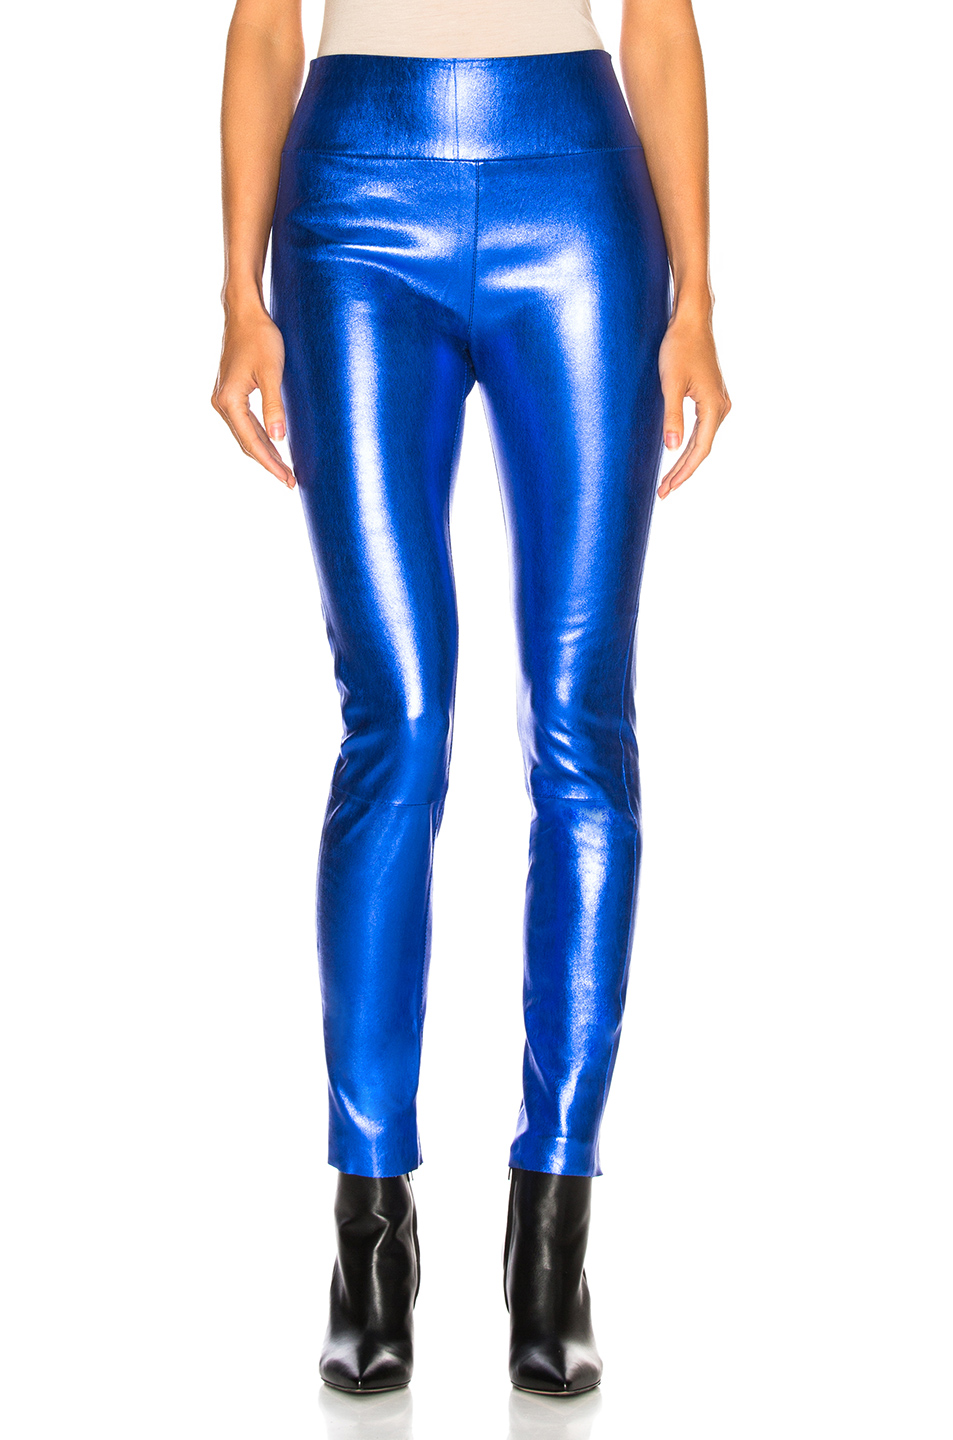 1e2885cd6 Buy Original SPRWMN High Waist Leather Ankle Legging at Indonesia ...